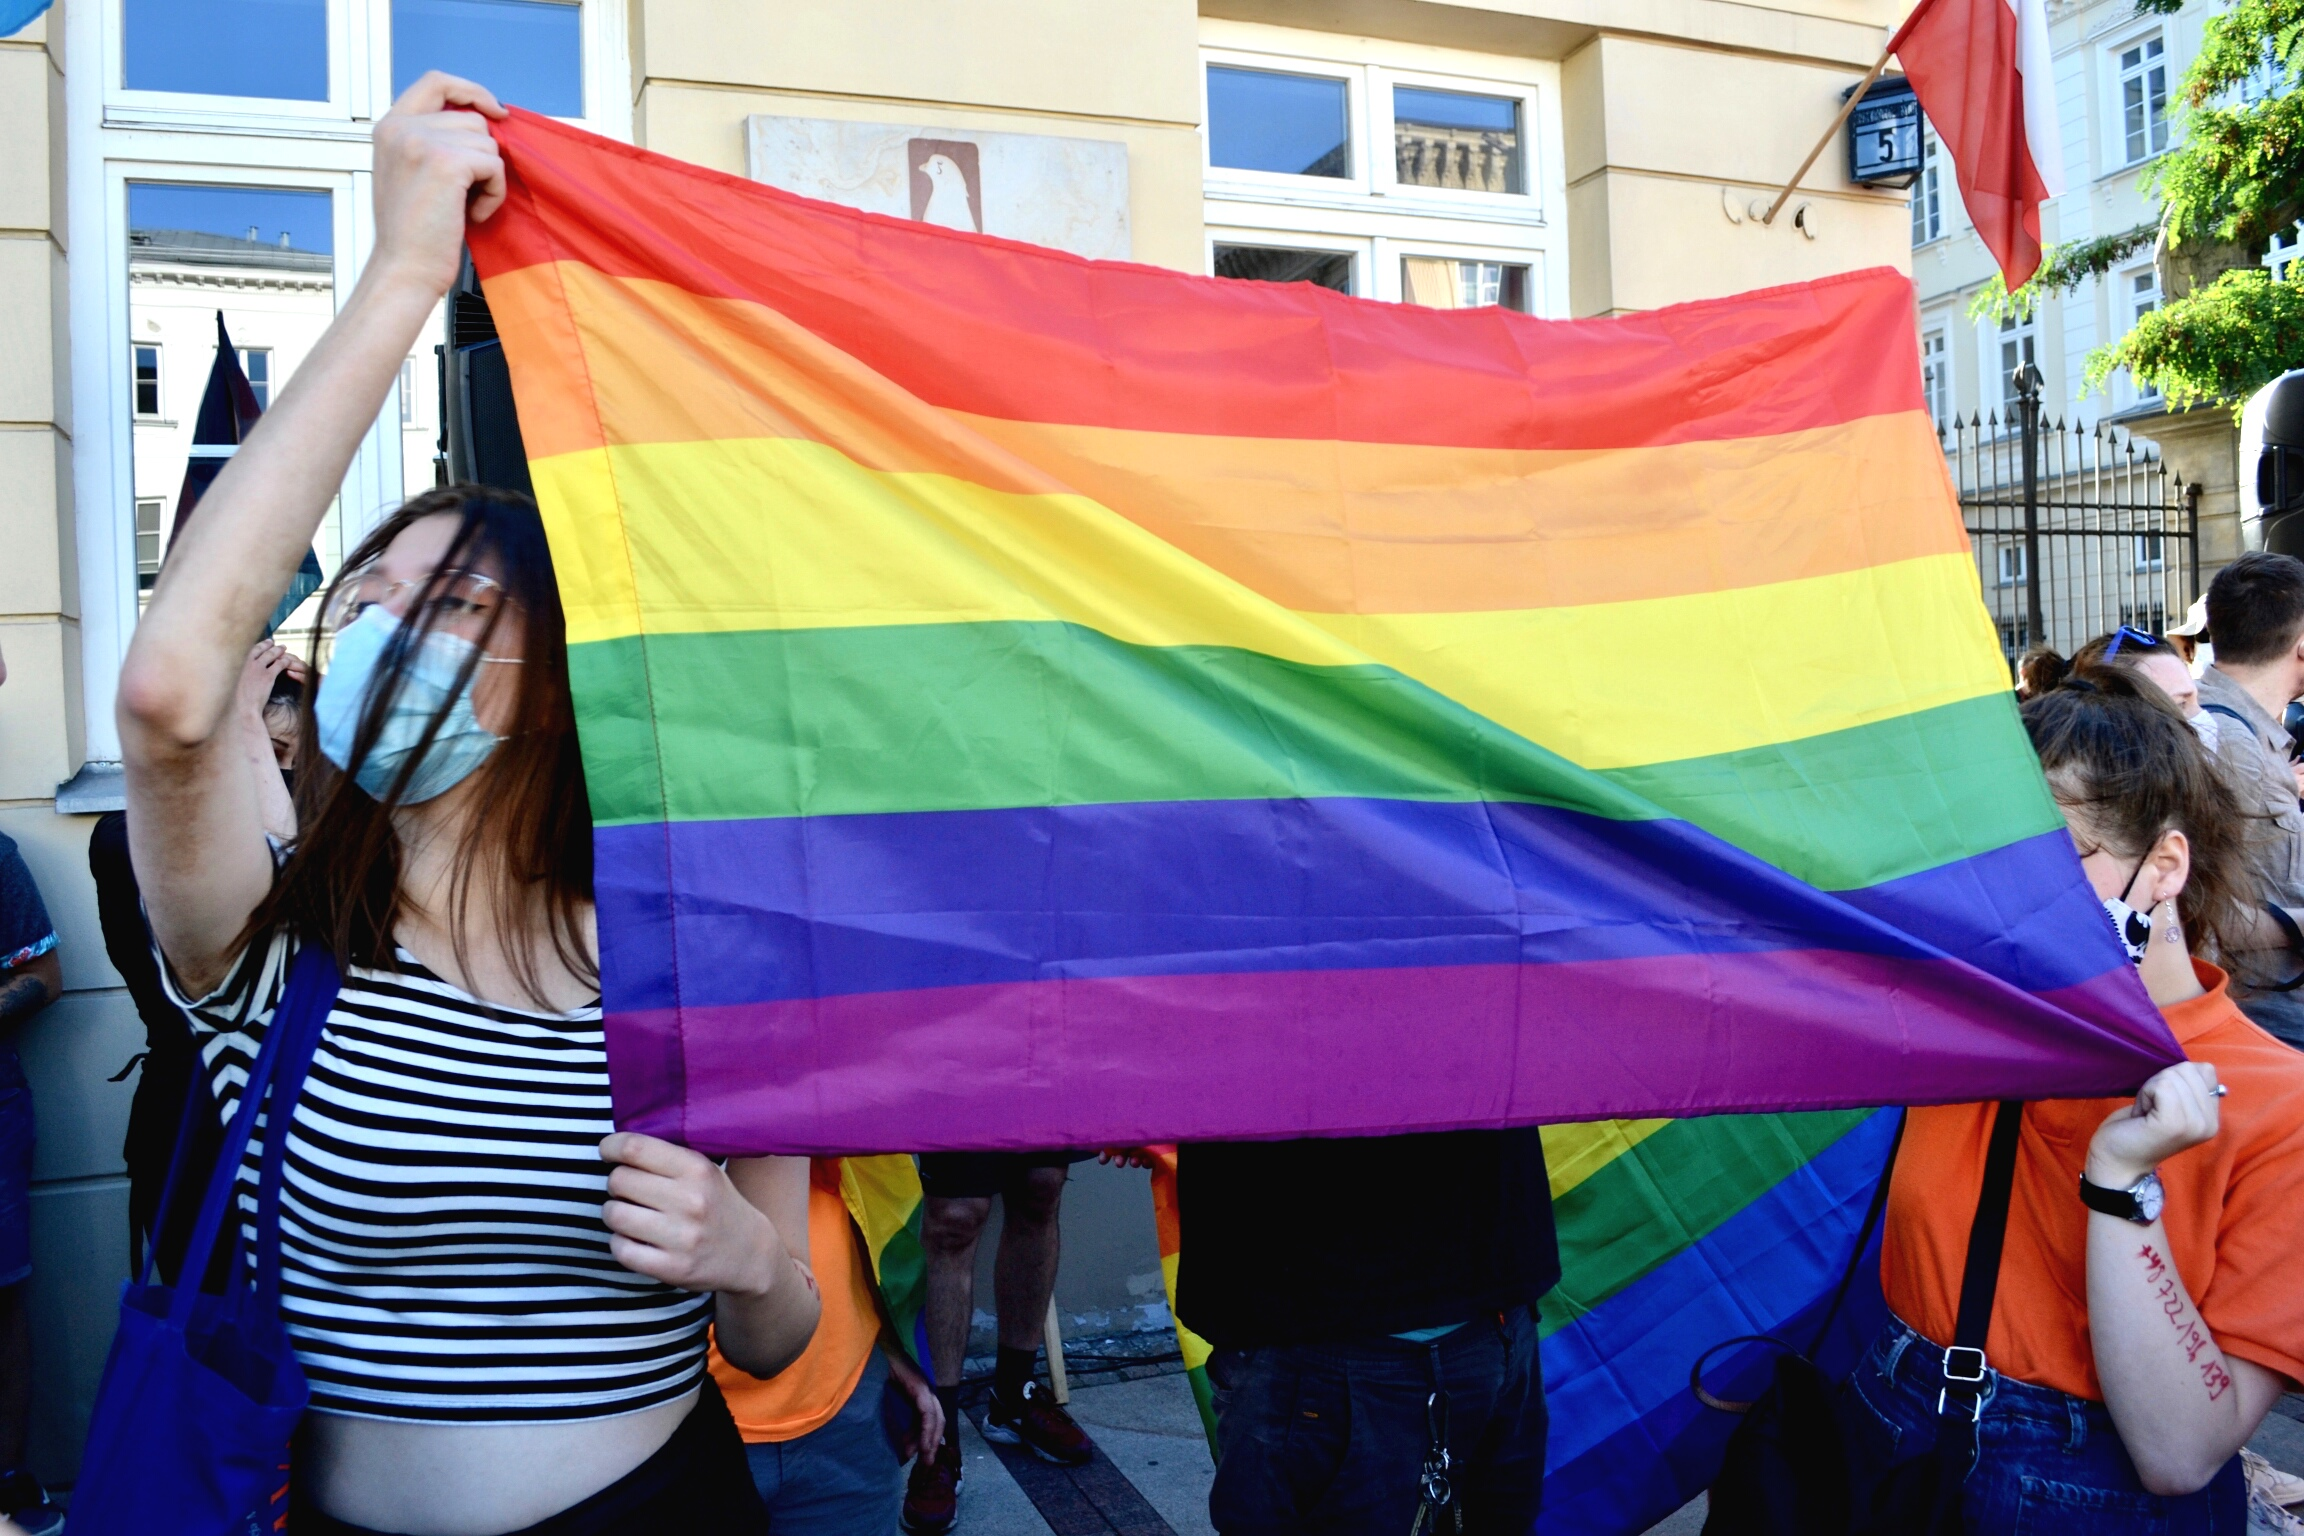 A rainbow flag is held up at a counter protests.